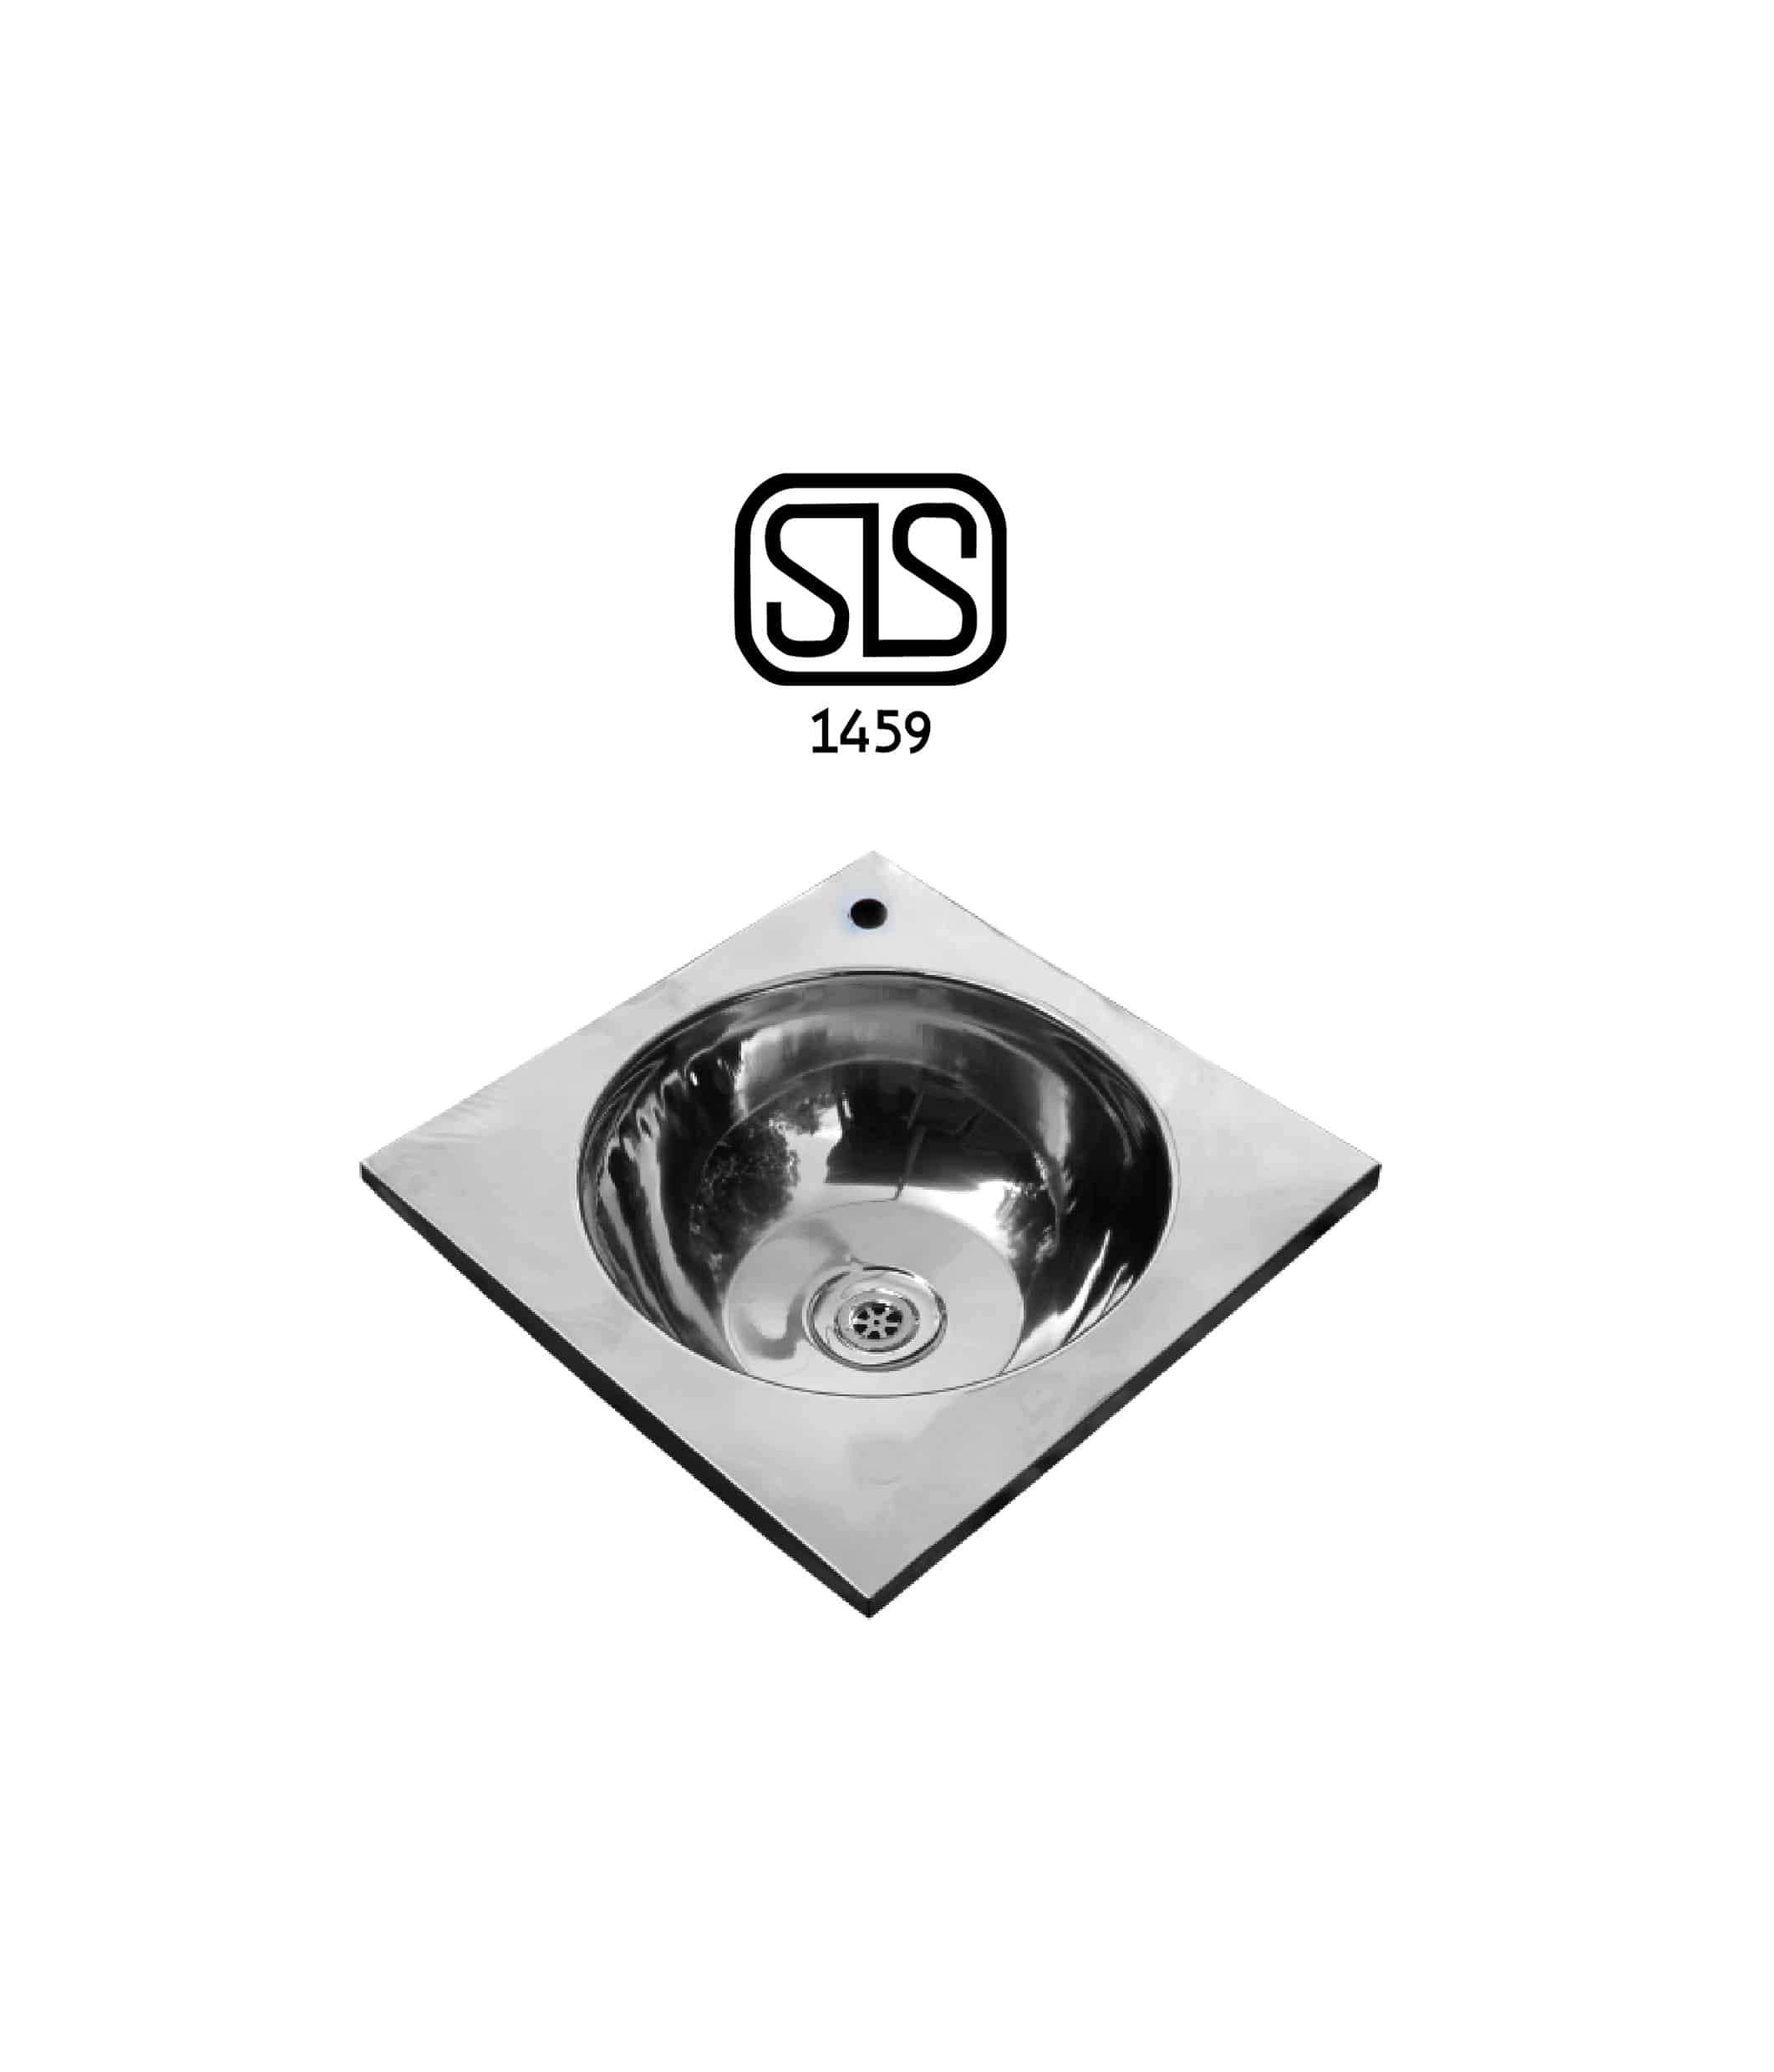 Single Bowl Stainless Steel Kitchen Sink in Sri Lanka 15 x 15IN (Bowl Only) Square